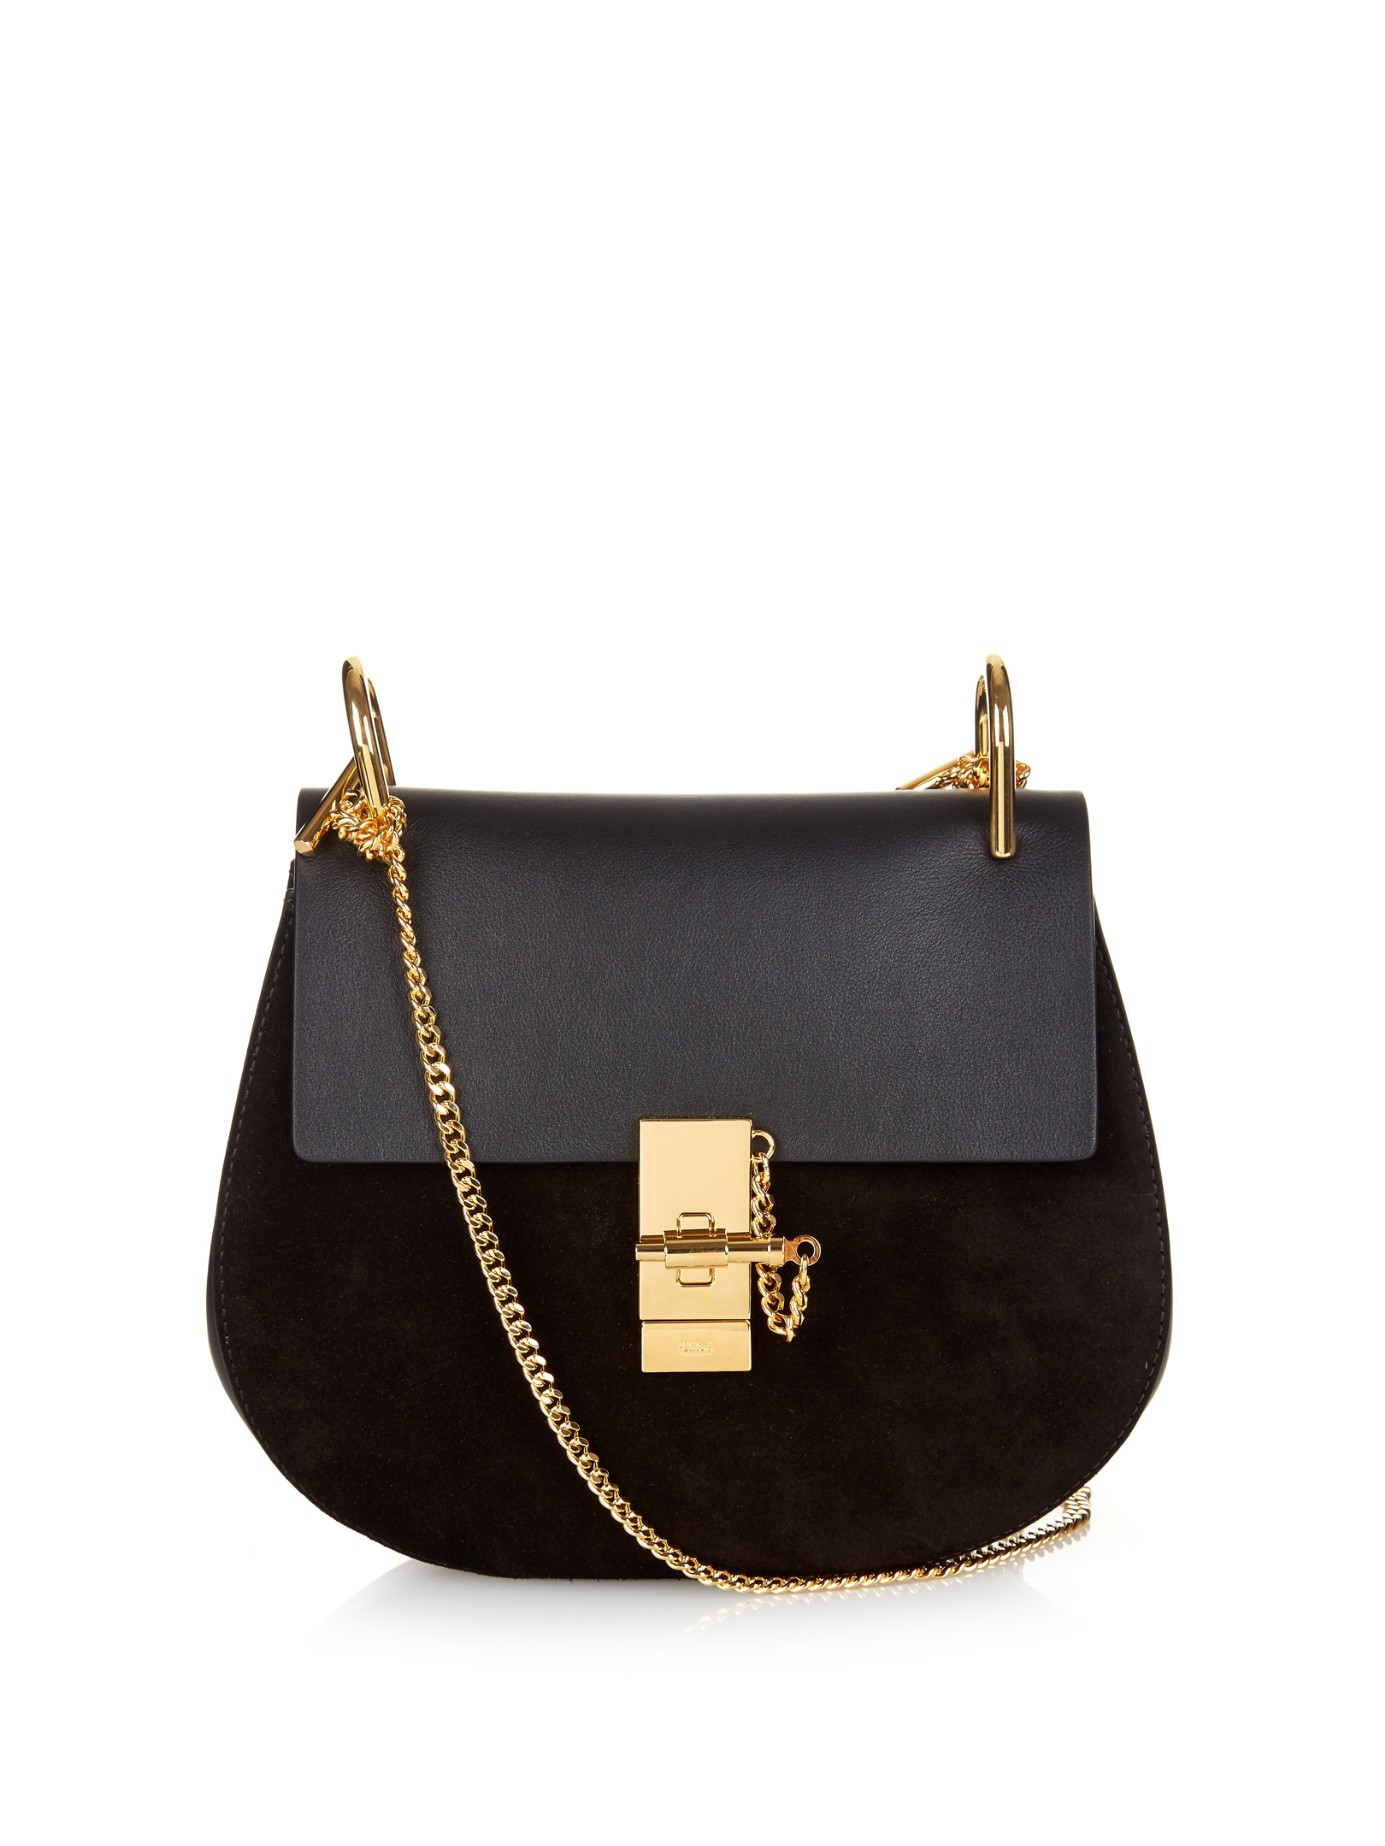 Chloé Drew Small Leather And Suede Cross-body Bag in Black | Lyst